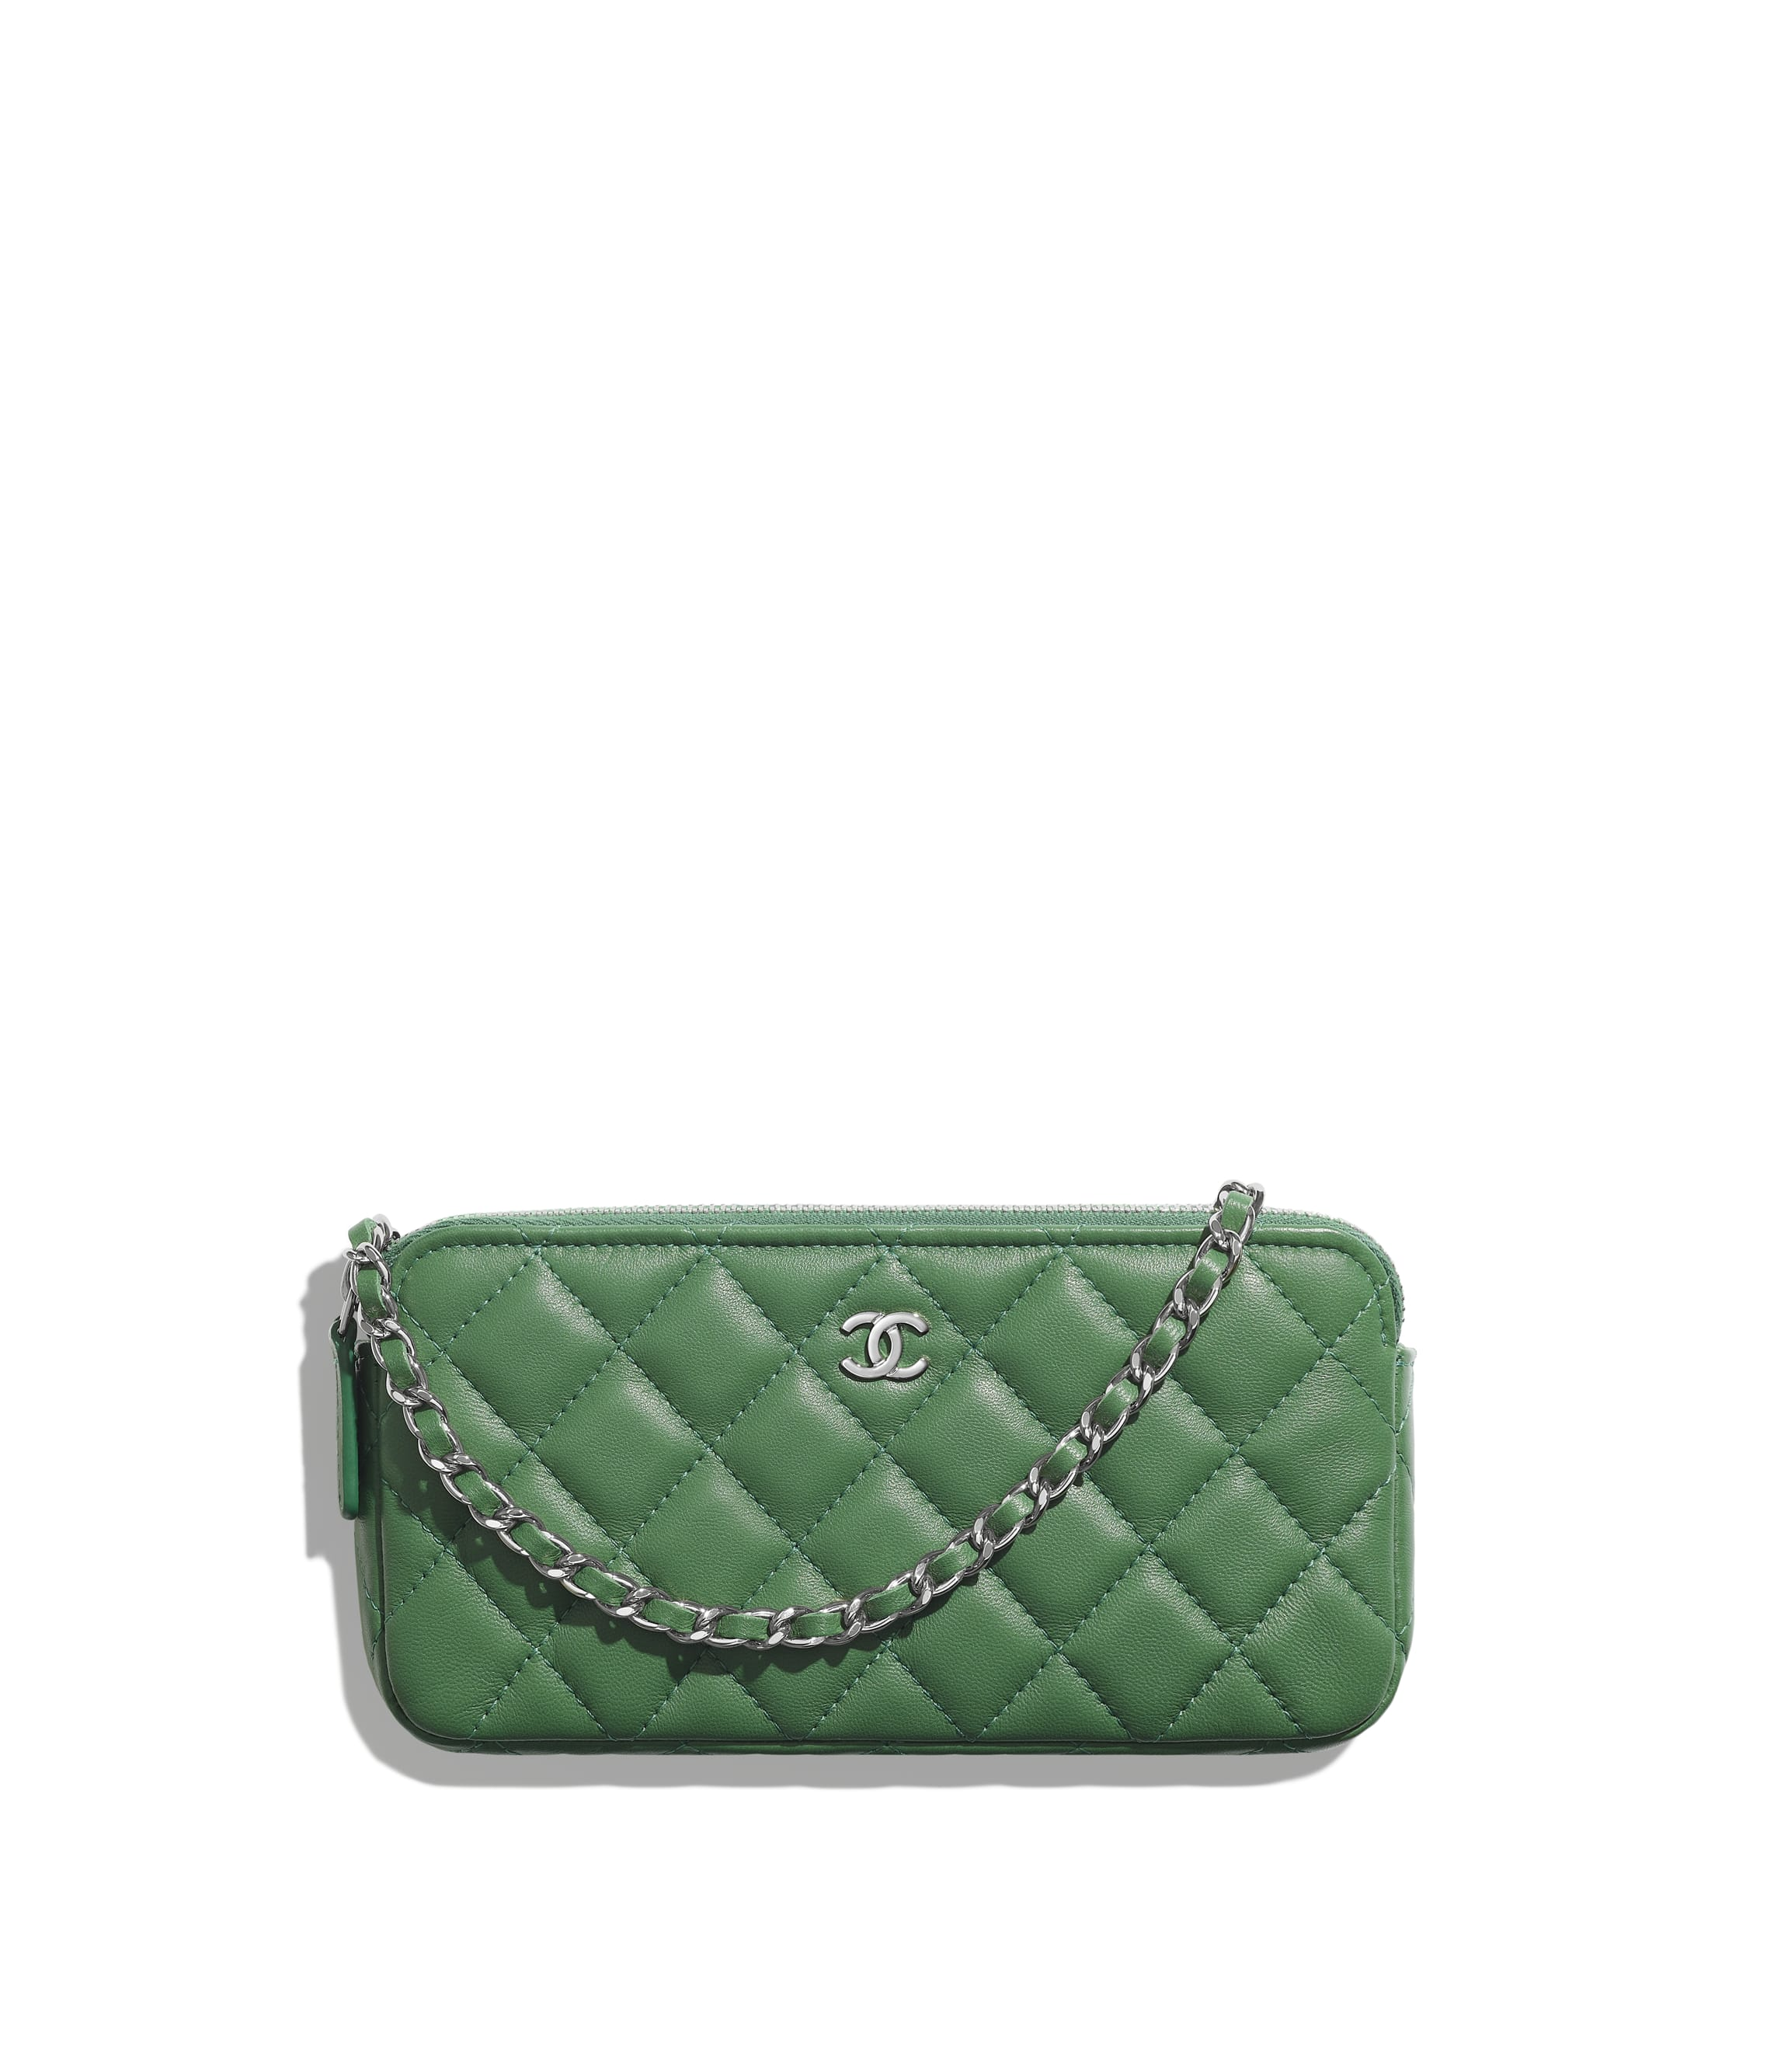 9814e789521 Clutches with Chain - Small Leather Goods - CHANEL